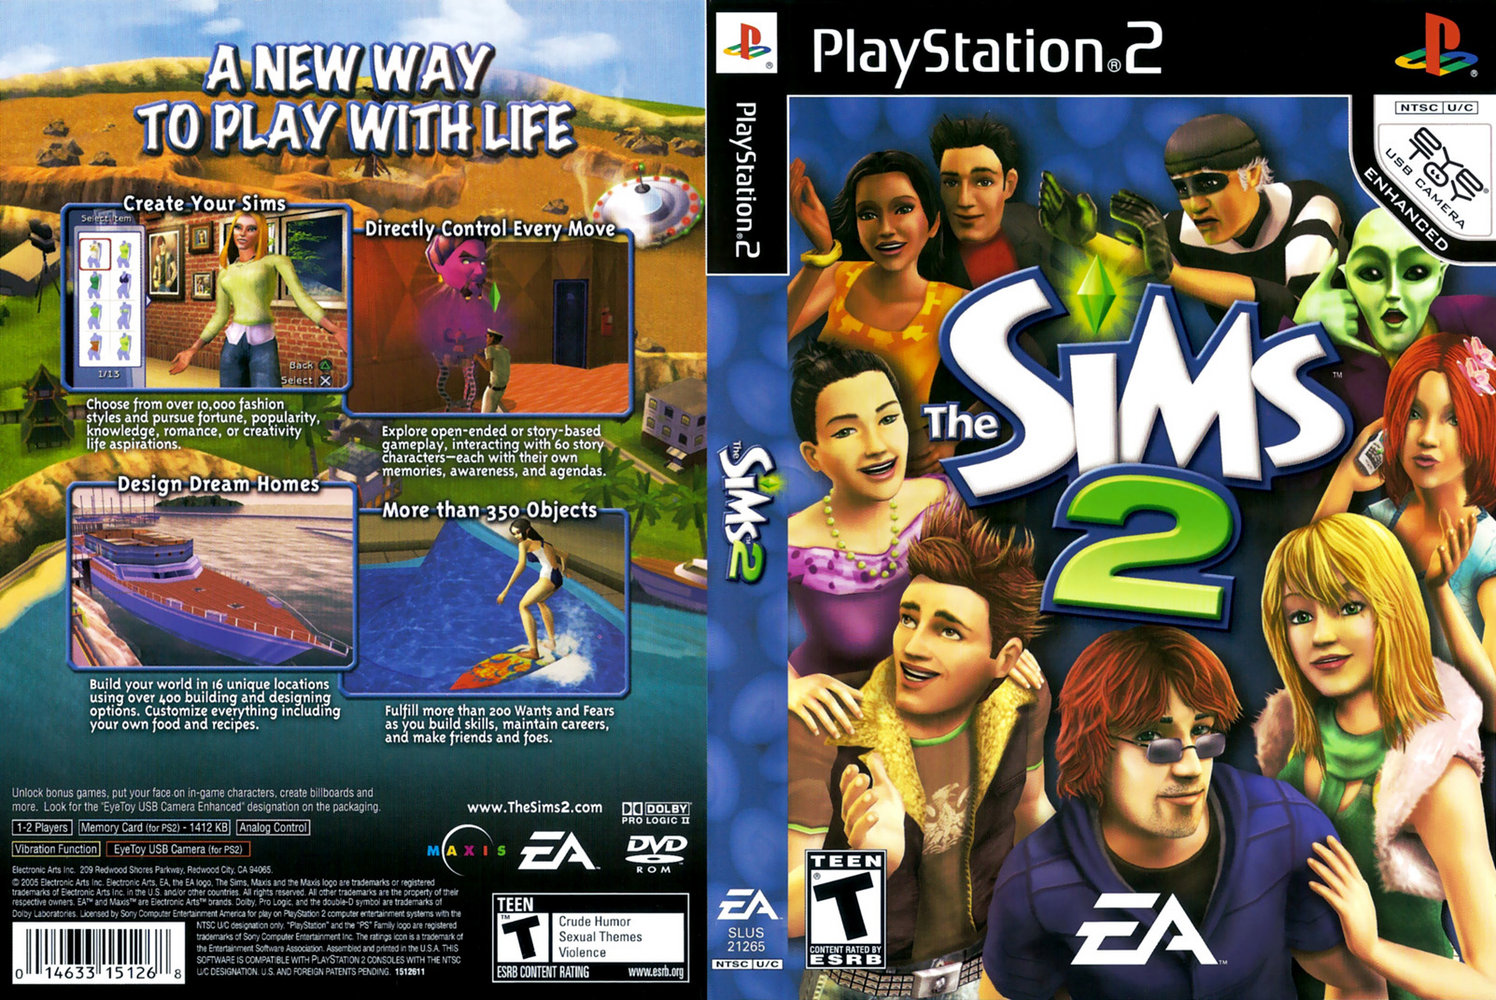 The sims 2 ps2 download free sex  erotica wifes